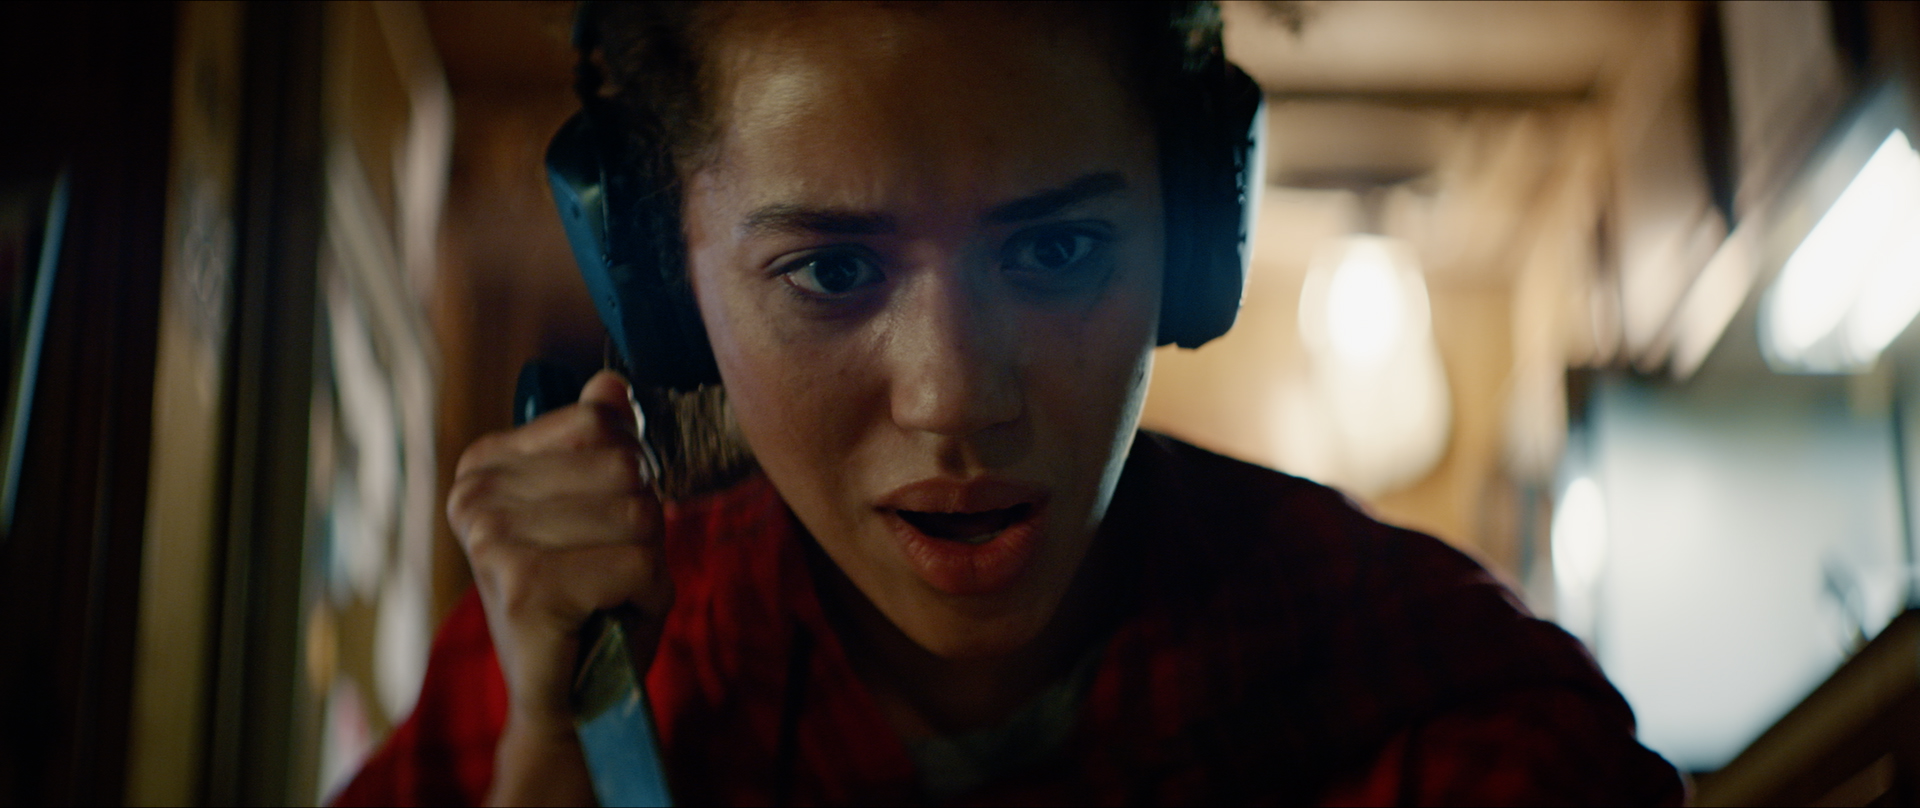 Jasmin Savoy Brown as Alexis, holding knife in Sound of Violence